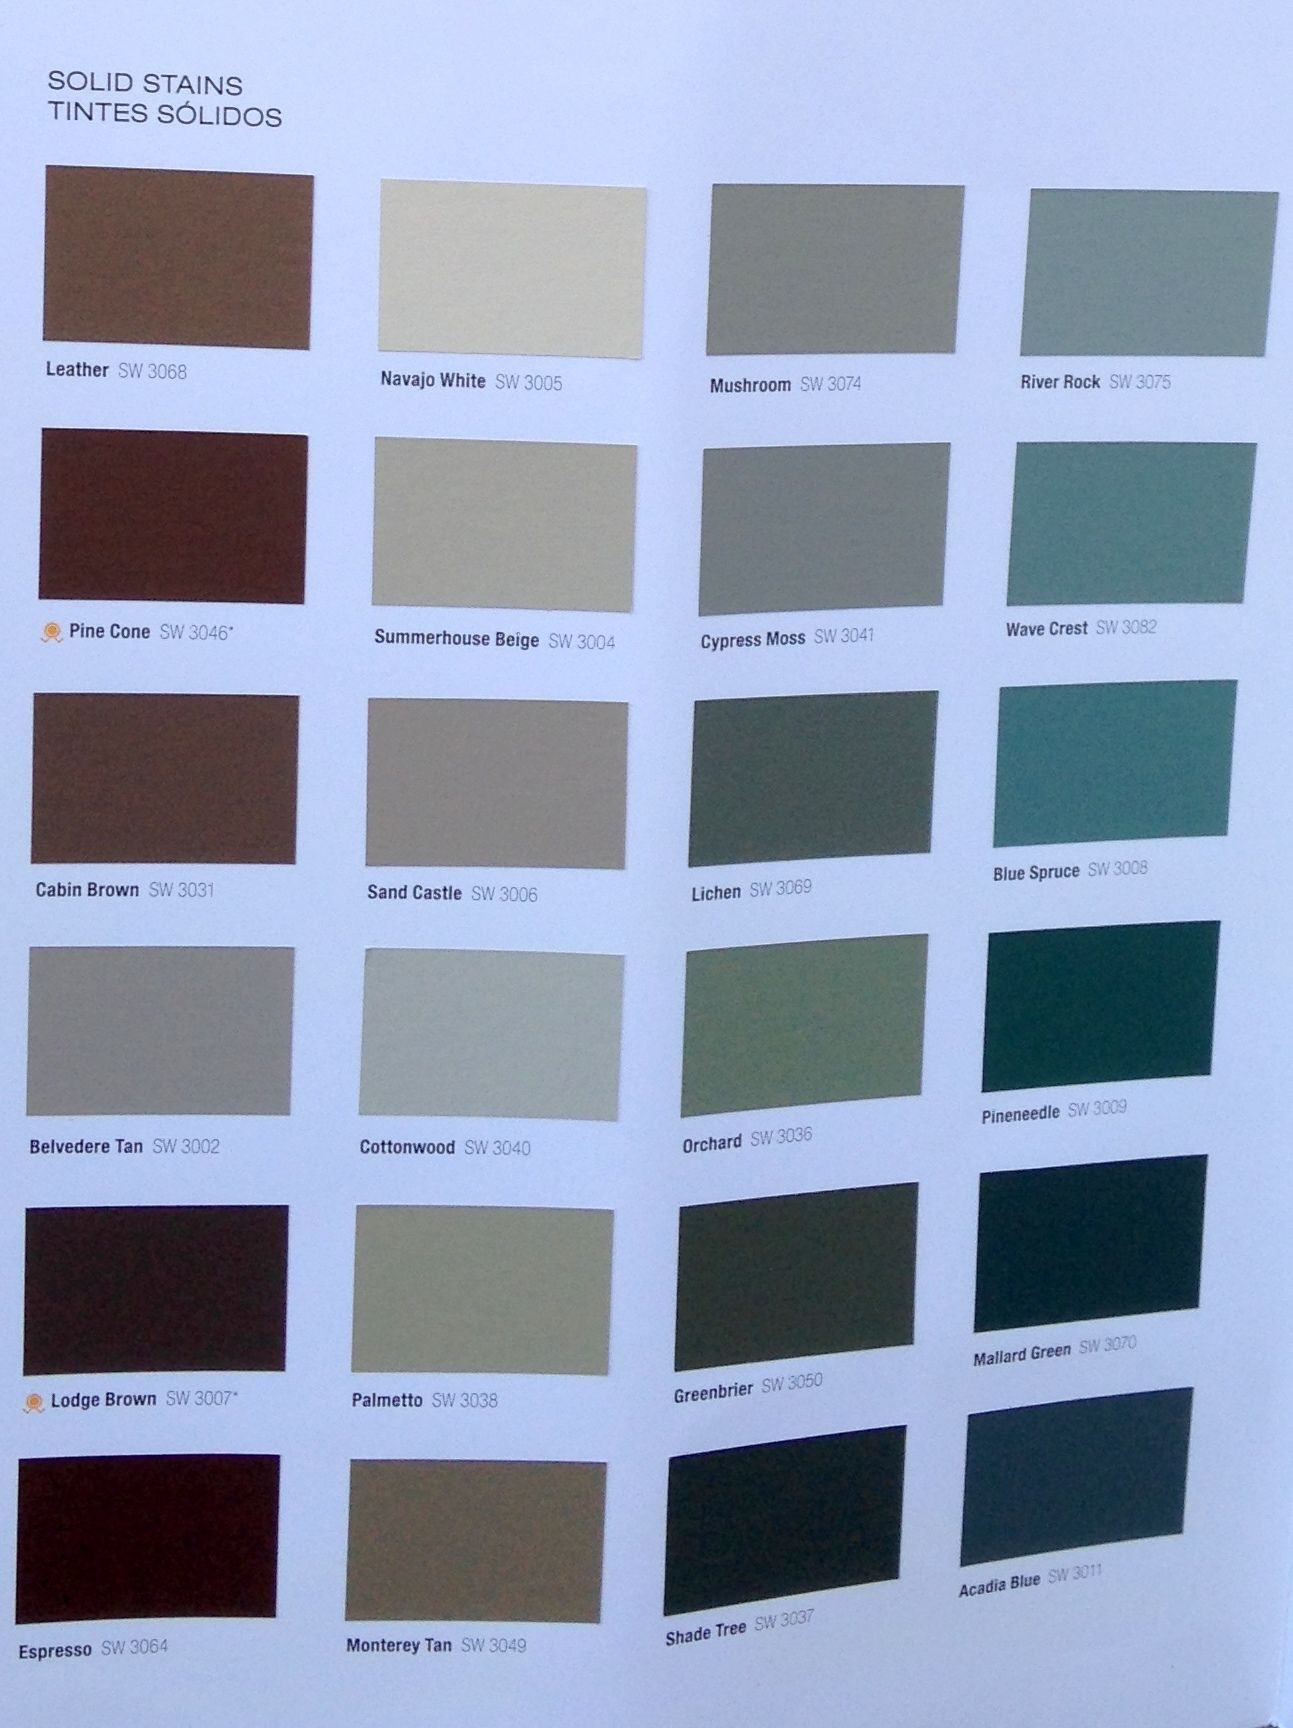 Best ideas about Sherwin Williams Paint Colors 2019 . Save or Pin Sherwin Williams solid stains for deck & fence Now.